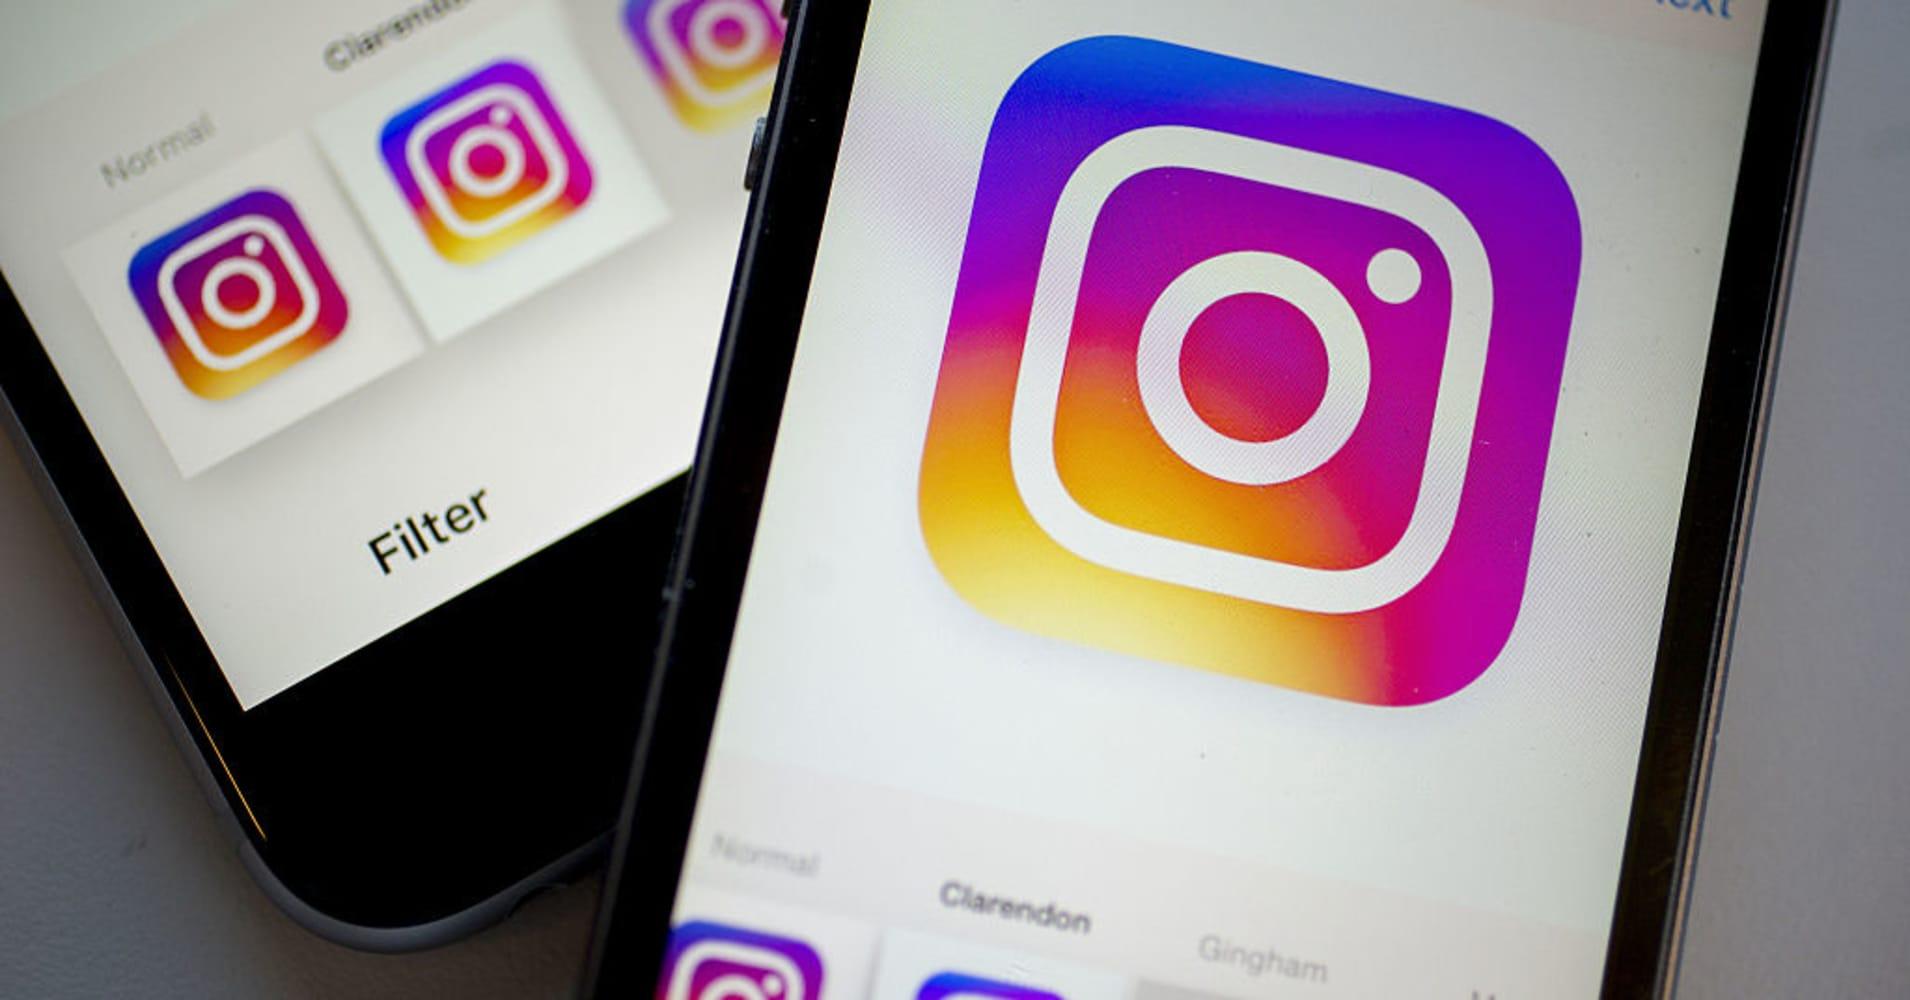 Instagram users are promoting economic policy for pay